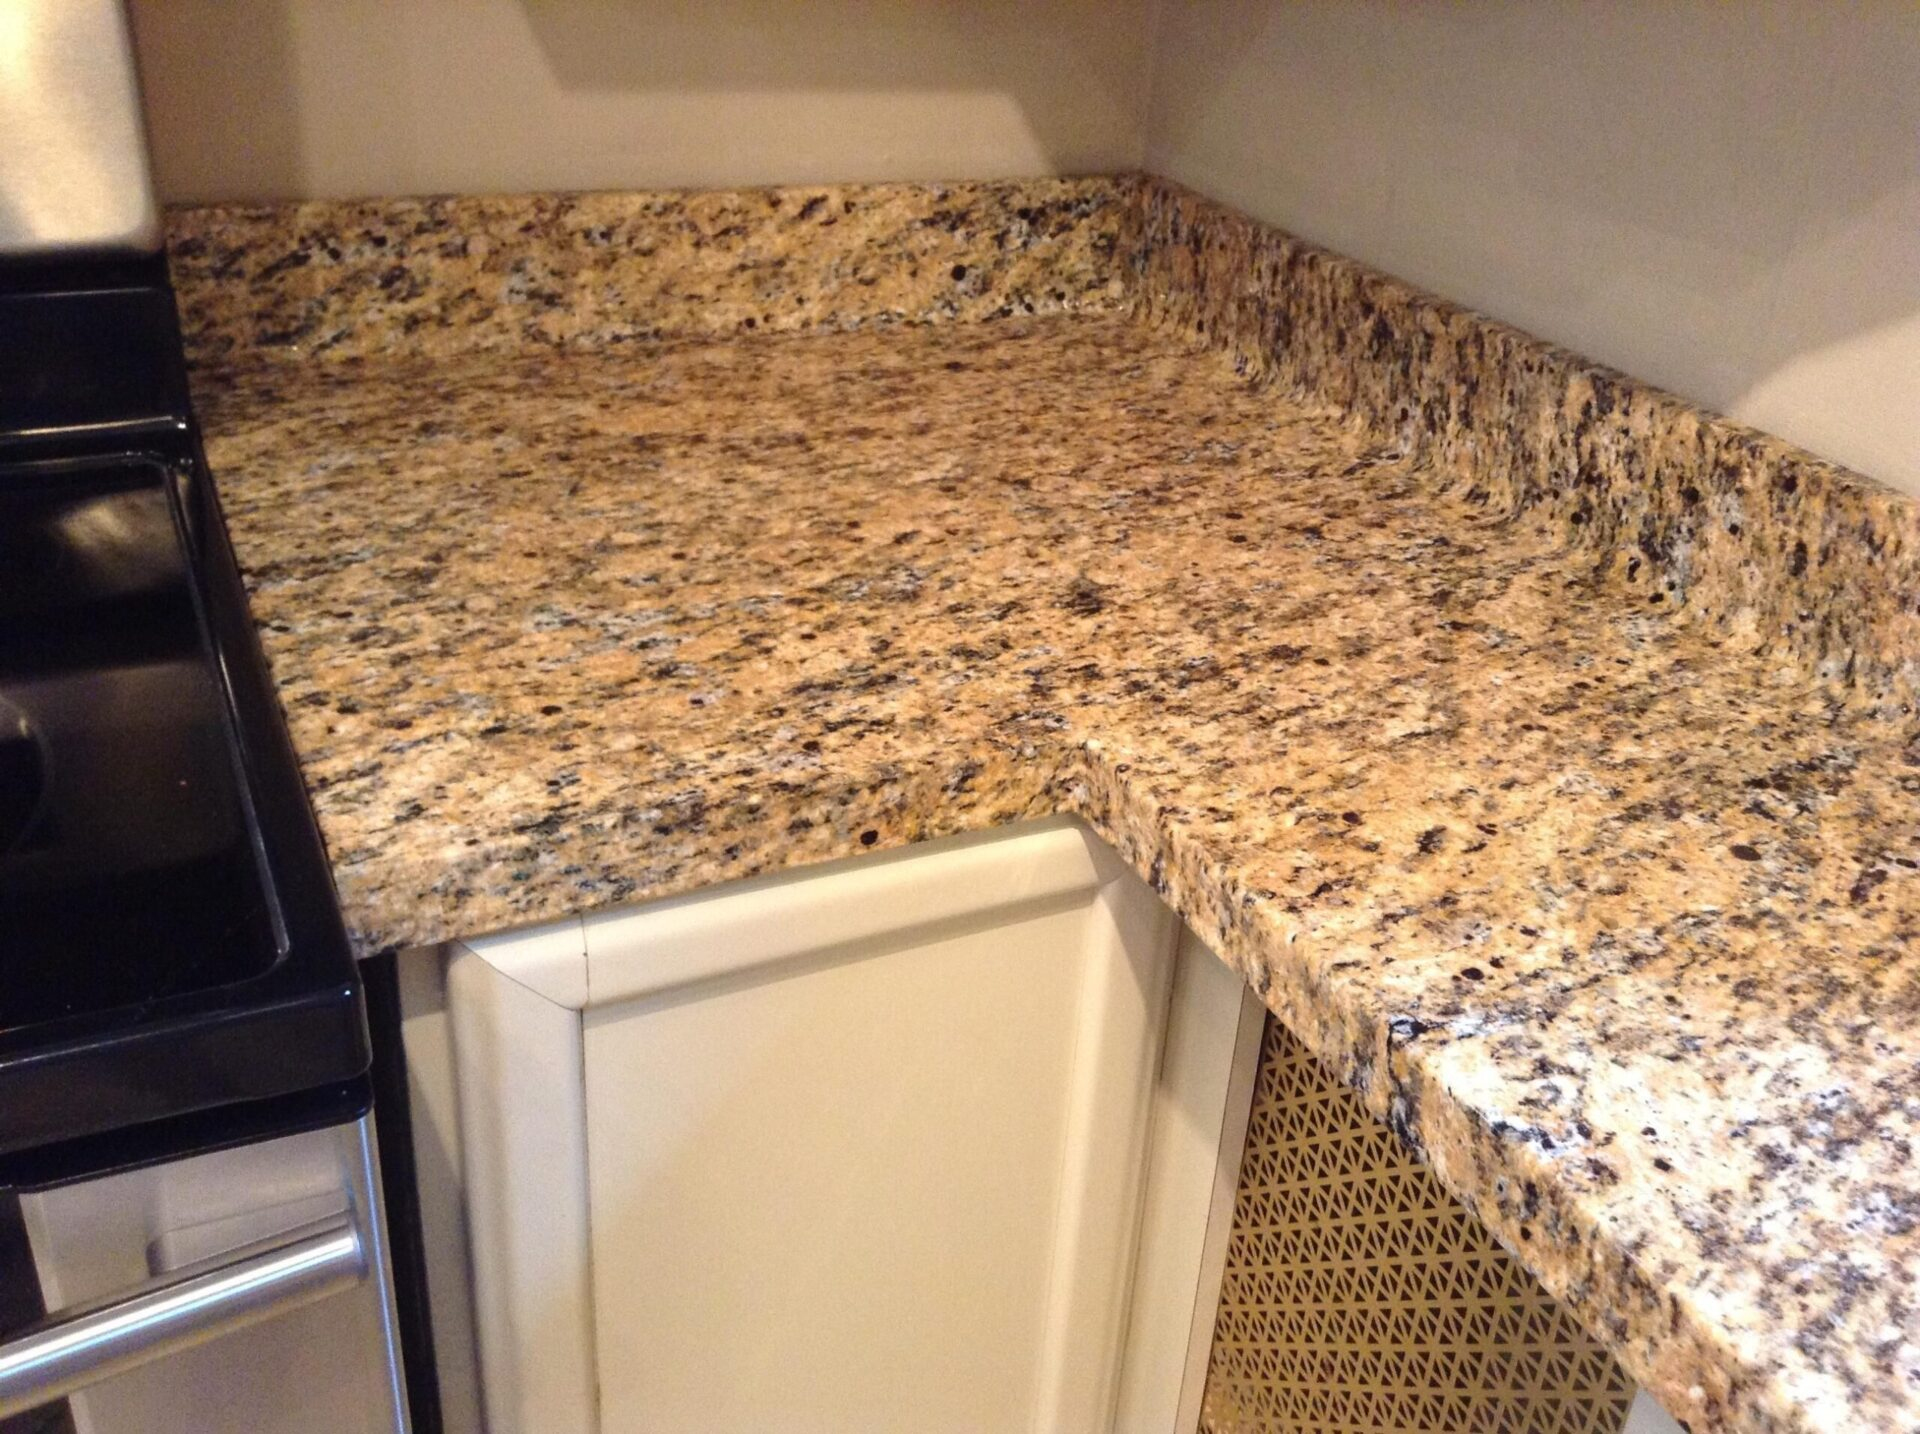 Home Improvement Project: Faux Granite Countertop for kitchen